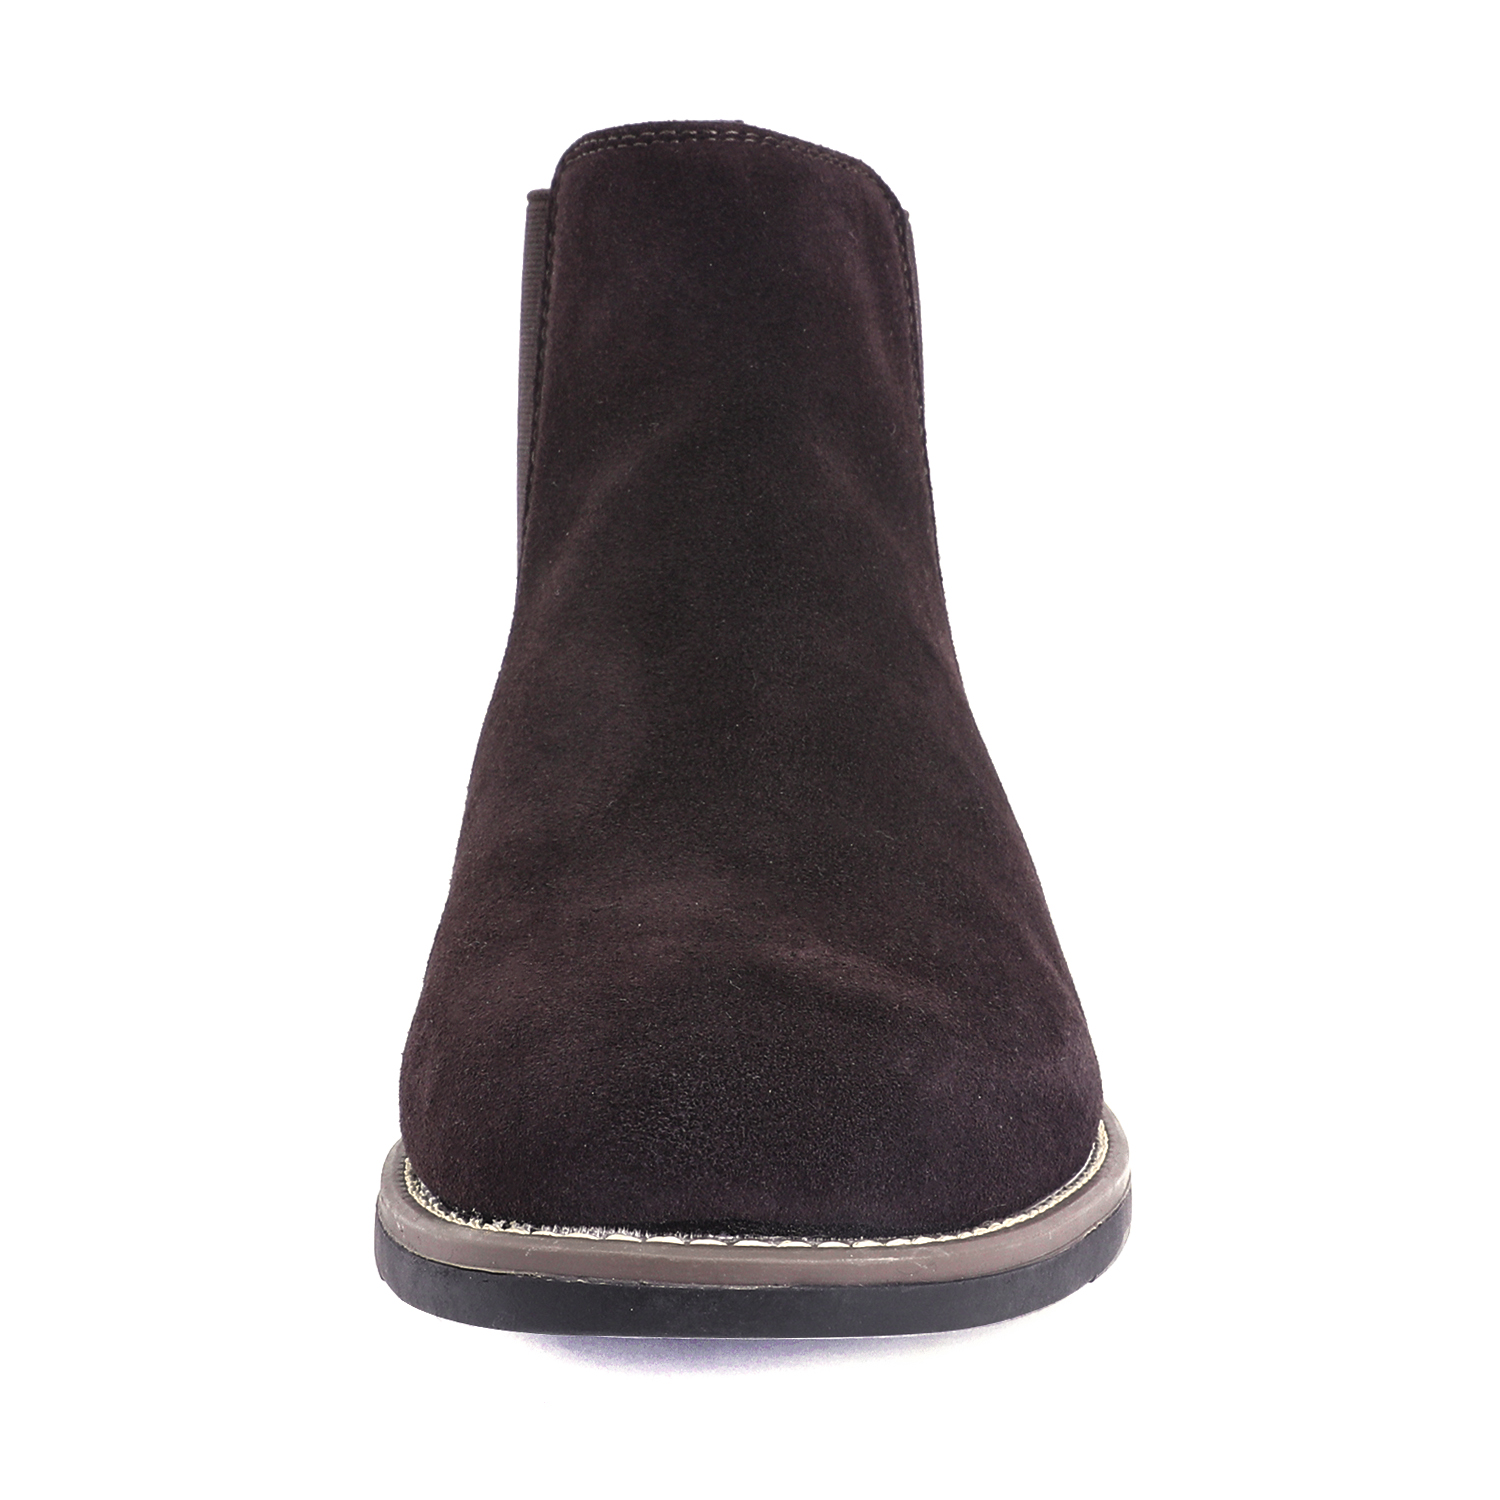 BRUNO-MARC-Men-URBAN-Suede-Leather-Chelsea-Chukka-Dress-Ankle-Boots-Casual-Shoes thumbnail 45